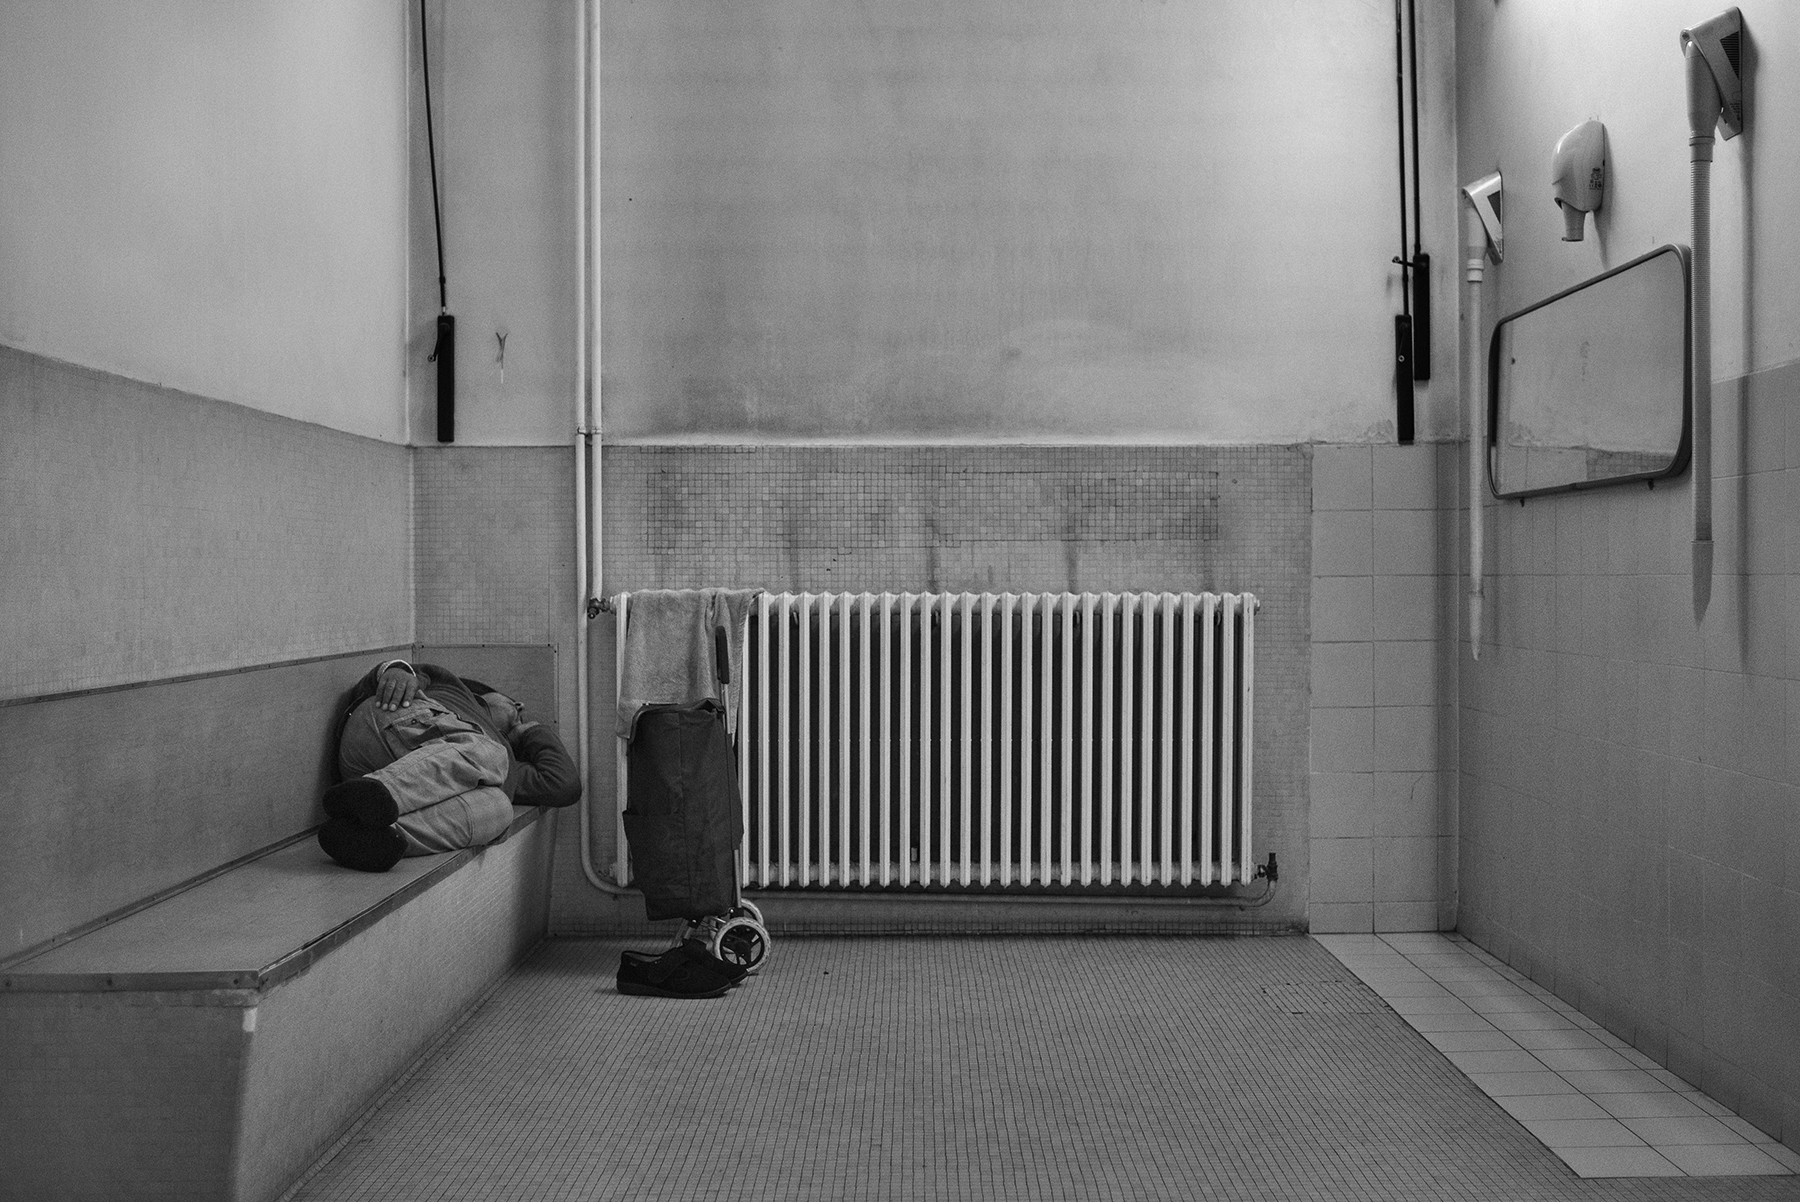 A man sleeps inside the Public Baths of via Bianzé in Turin, Italy; December 2018.In the winter season, public shower's users - especially whose homeless - take advantage of the warm environment to rest for a couple of hours, even if it is theoretically forbidden.